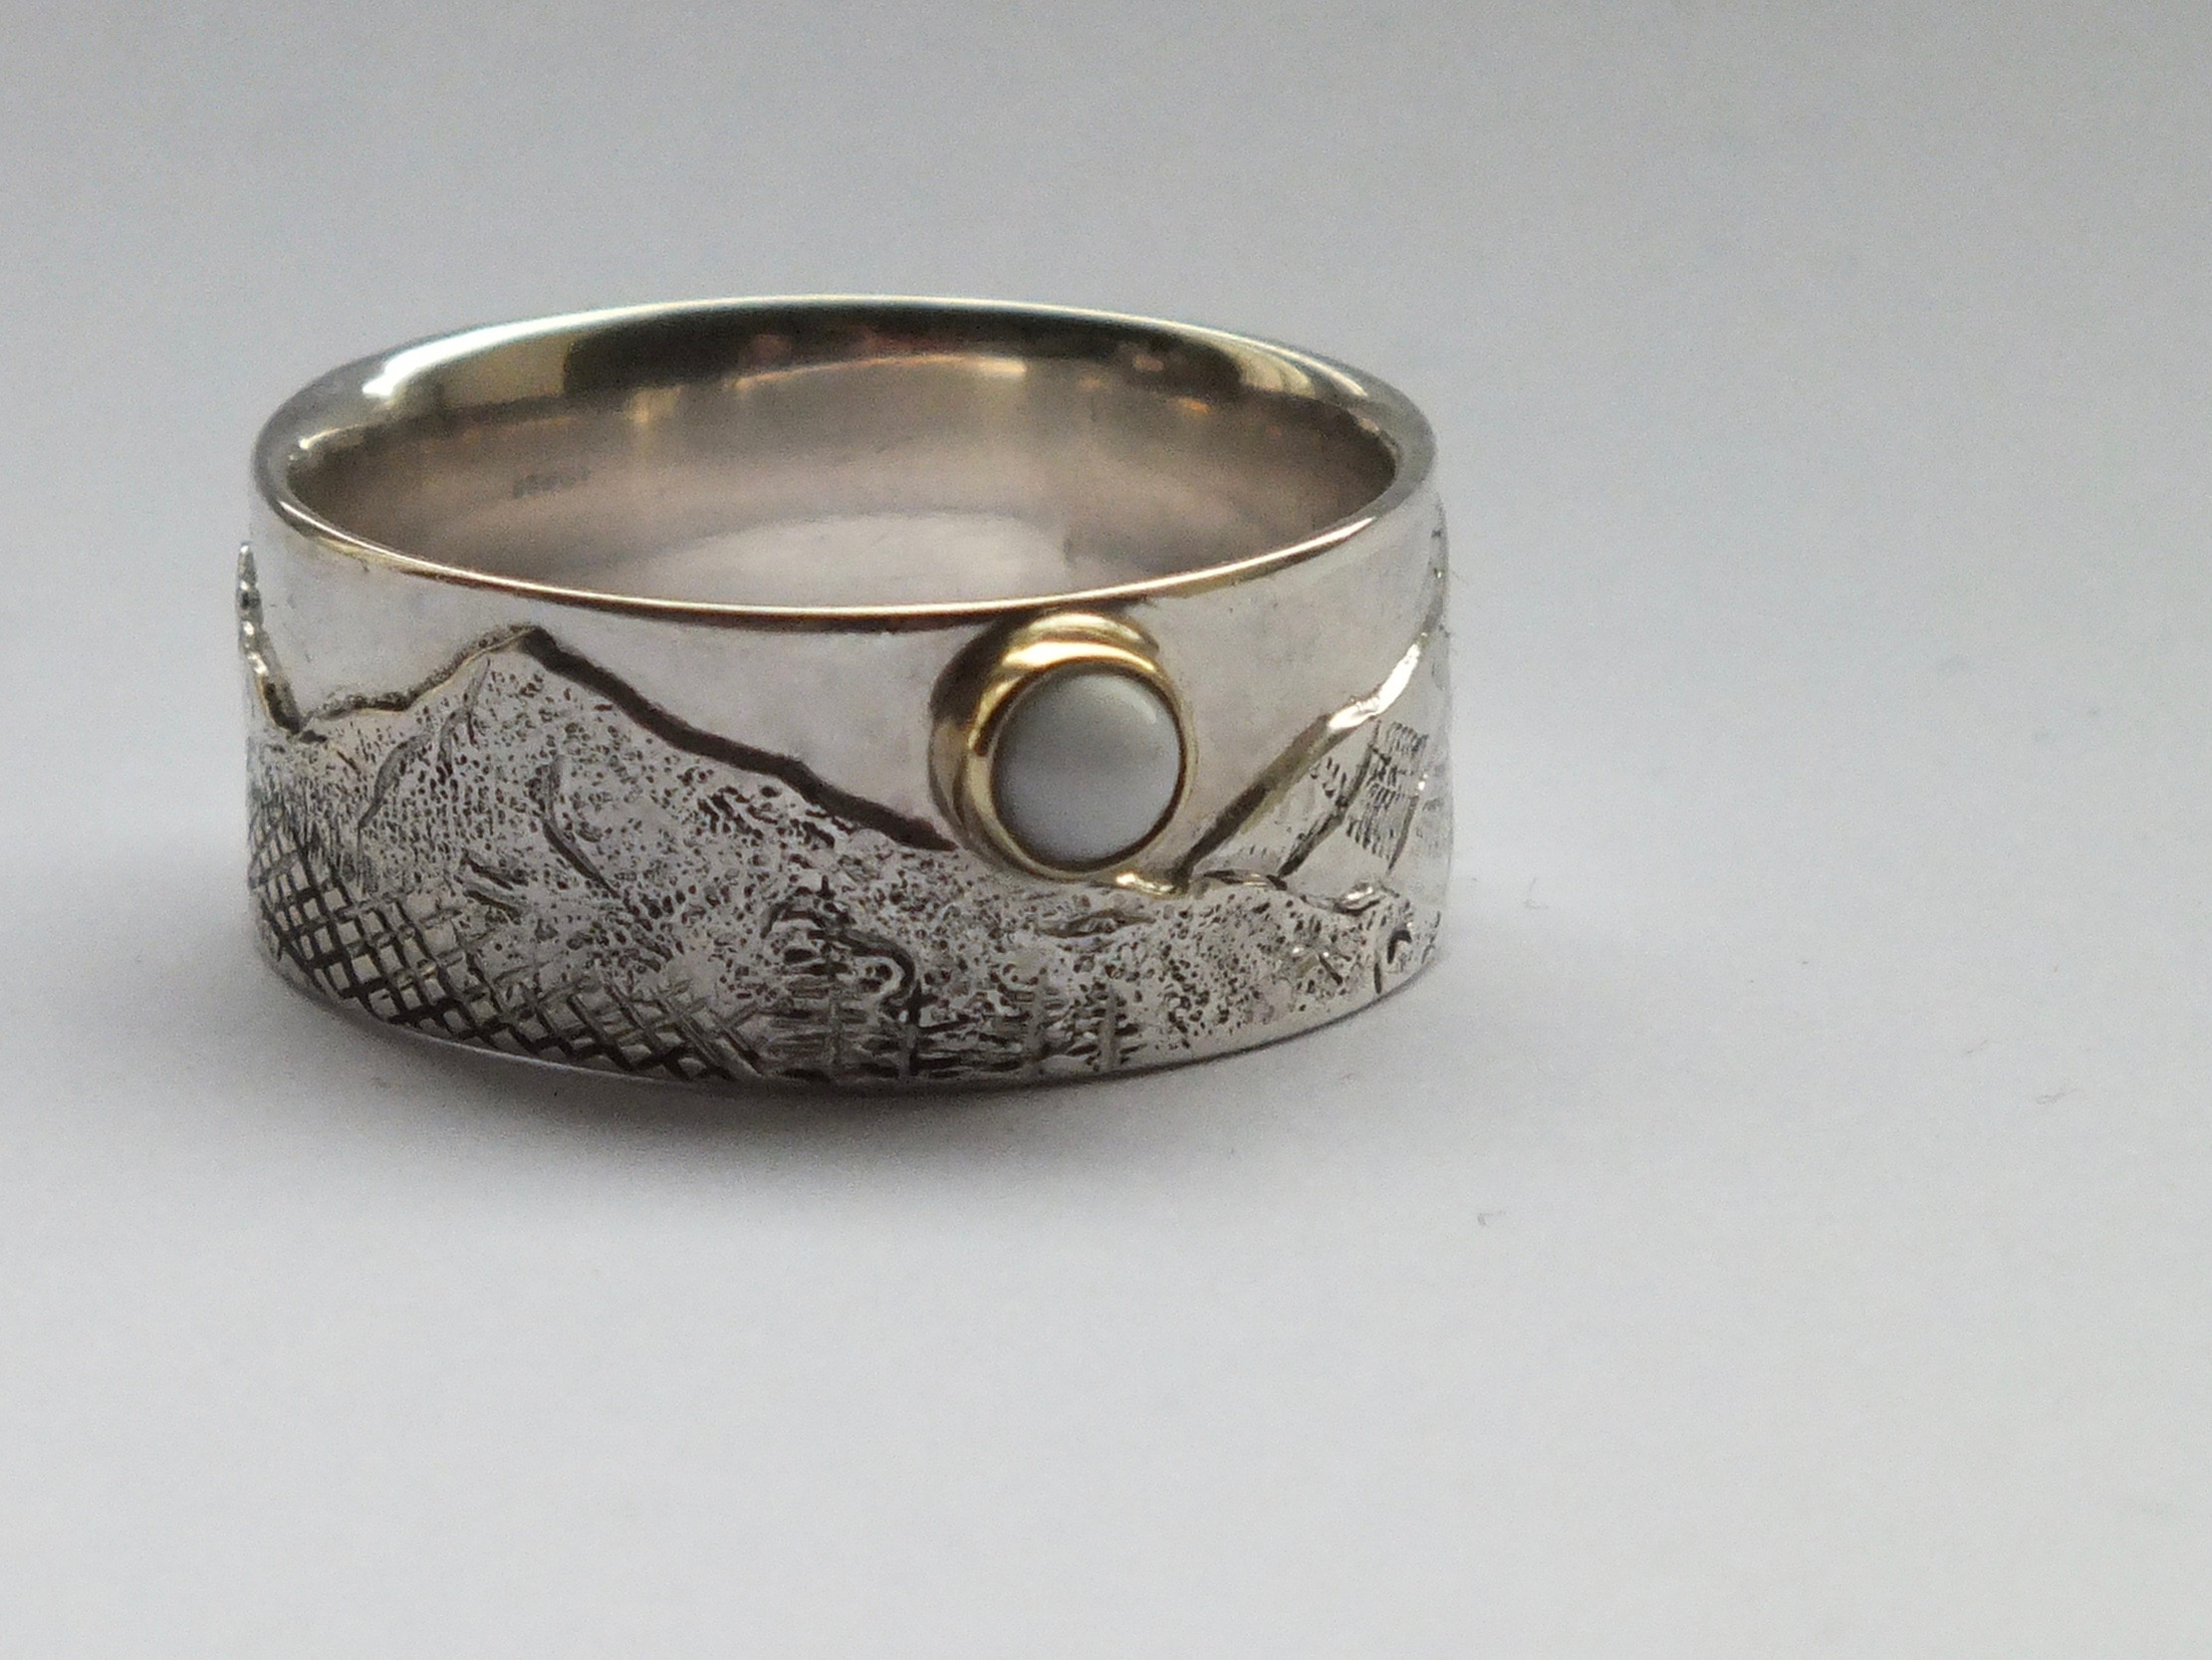 Chased and engraved ring of Oregon landscape with pearl, private commission